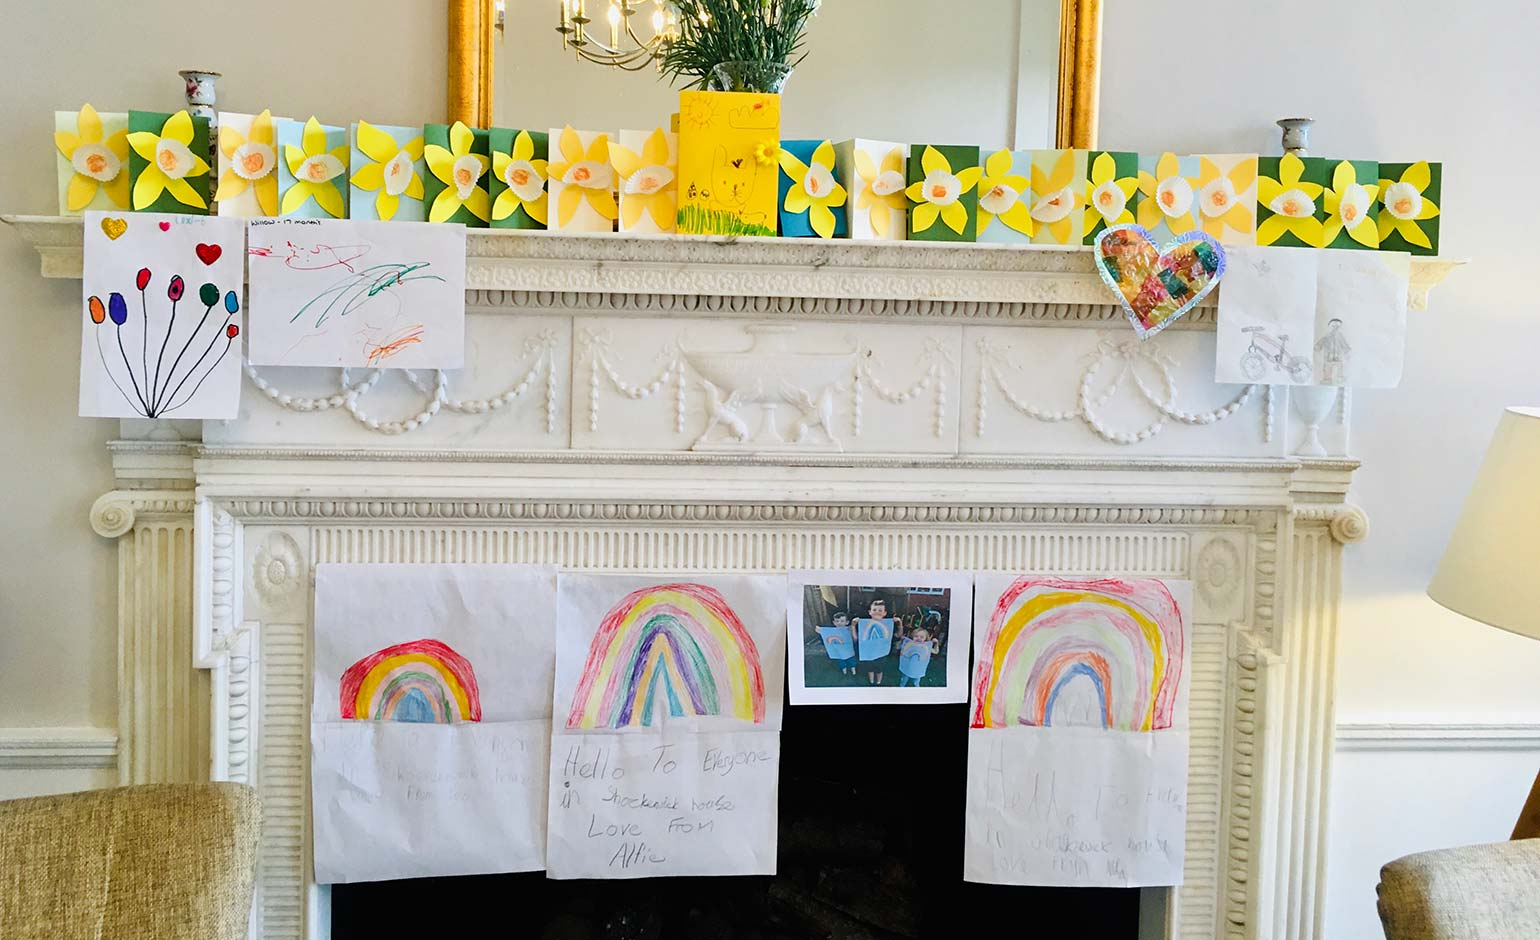 Bath schoolchildren send handmade crafts to support local care home